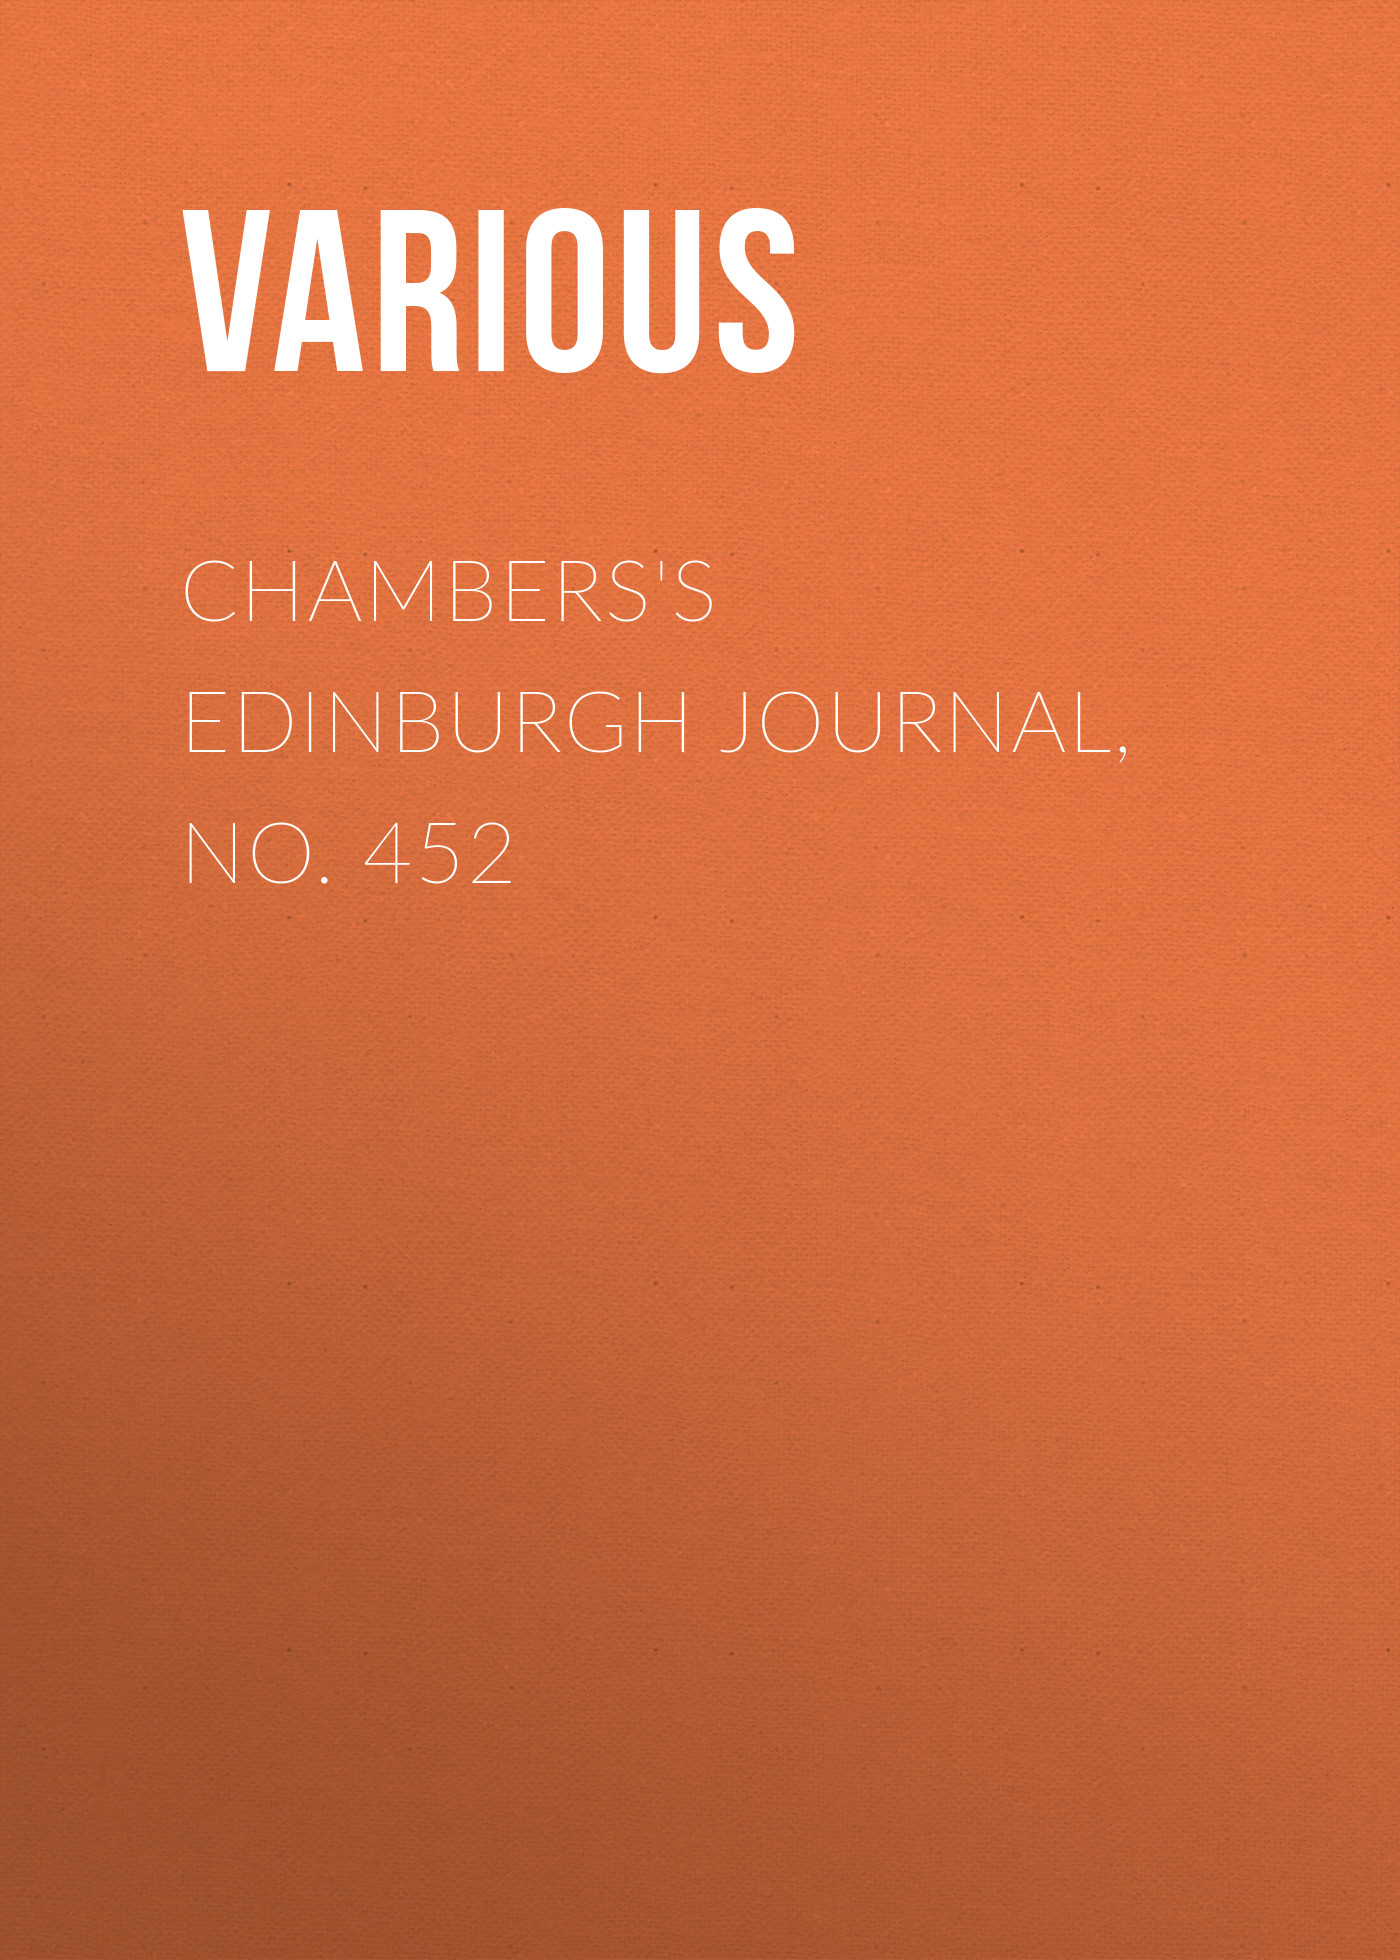 купить Various Chambers's Edinburgh Journal, No. 452 по цене 0 рублей